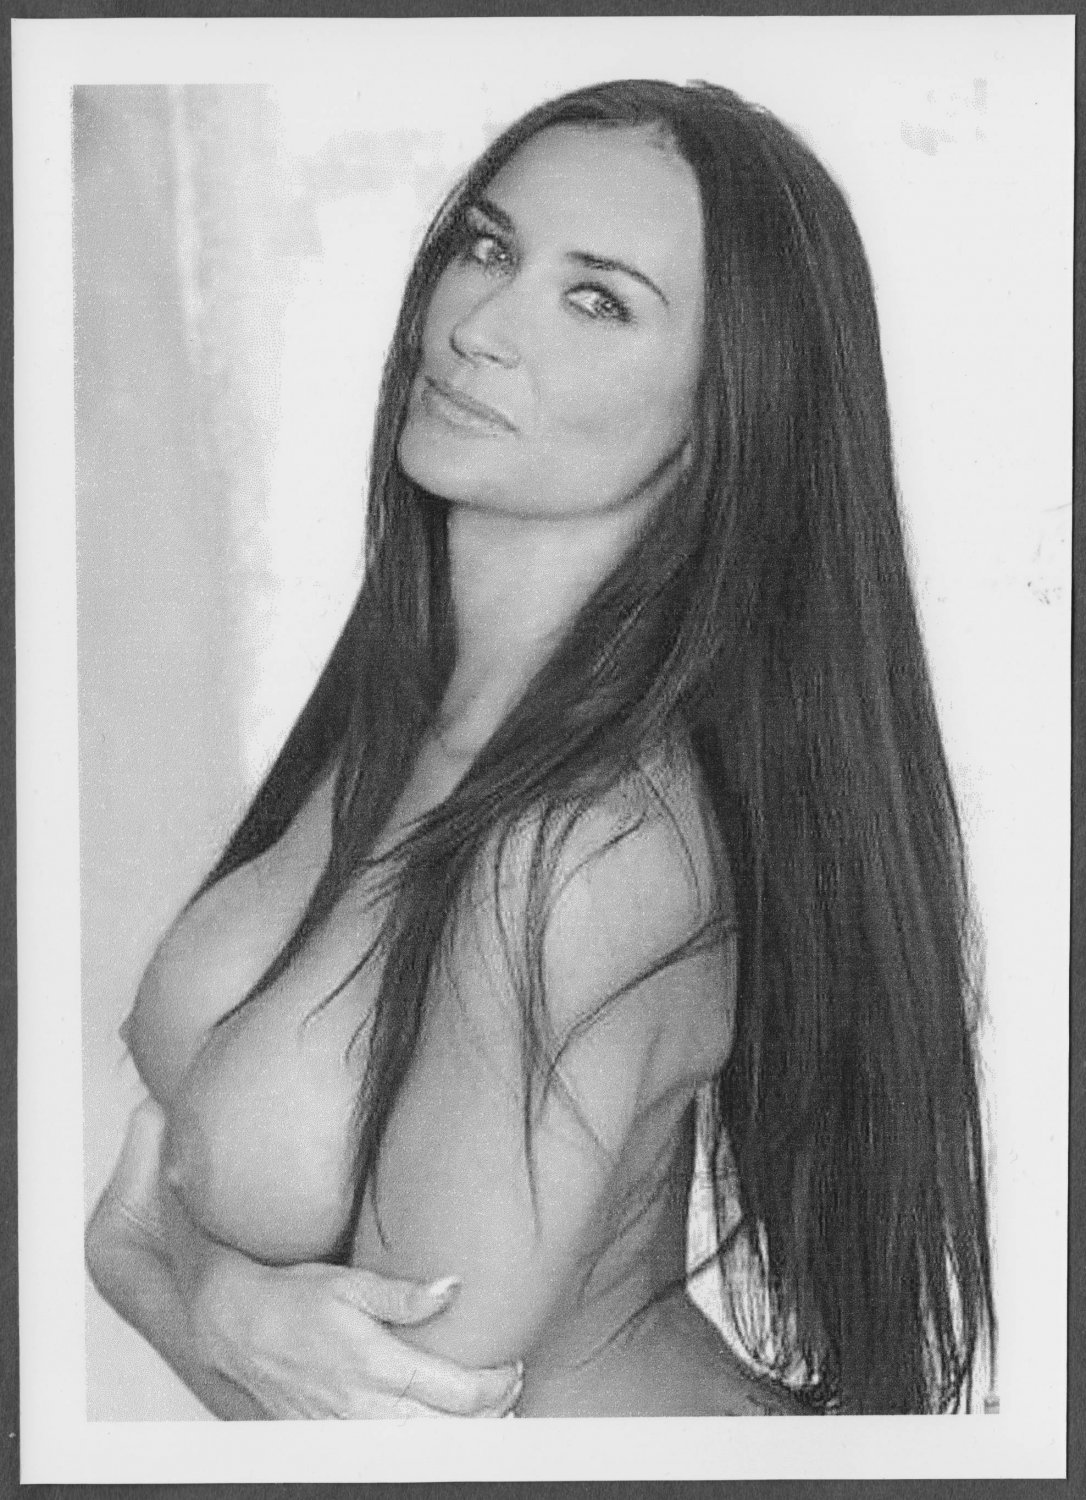 DEMI MOORE TOPLESS BIG LARGE BREASTS POSE 5X7  #007